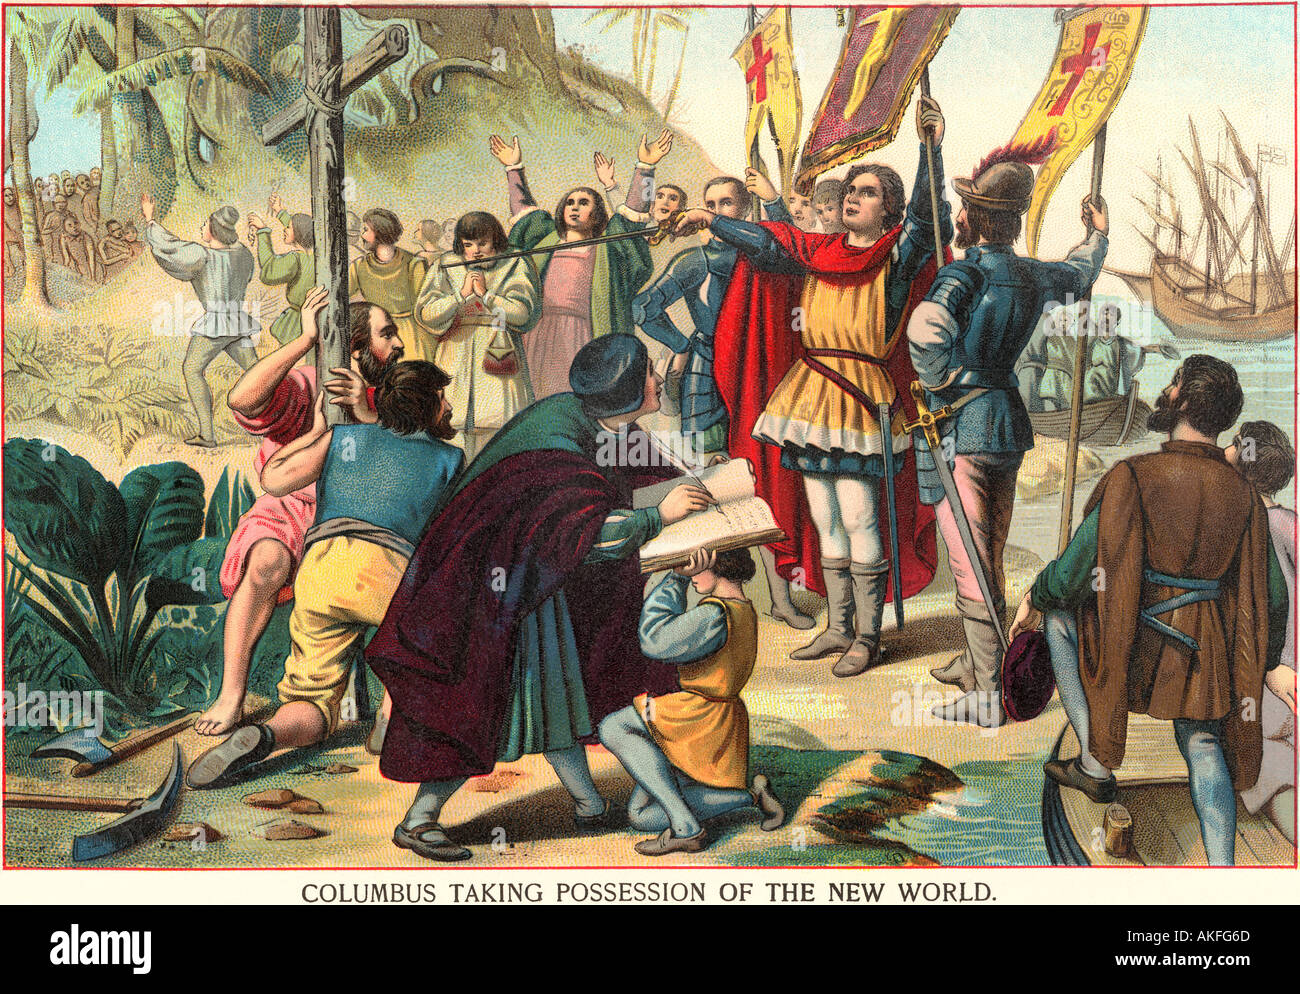 Christopher Columbus taking possession of the New World for Spain 1492.  Color lithograph